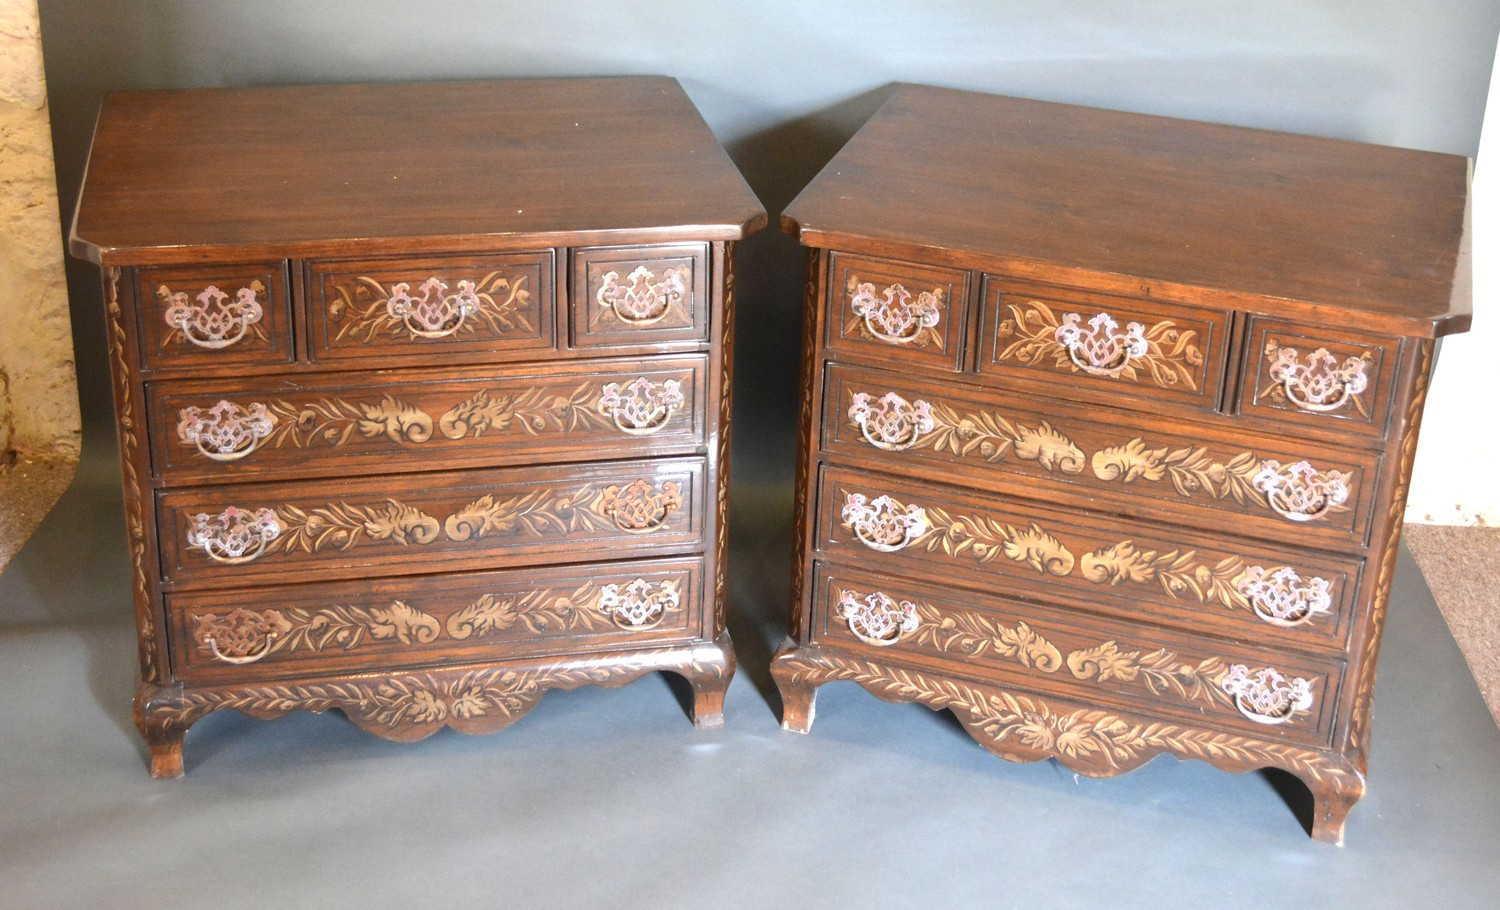 A Pair of 20th Century Painted Chests by Kathleen Spiegelman for Melvin & Bren Simon with three